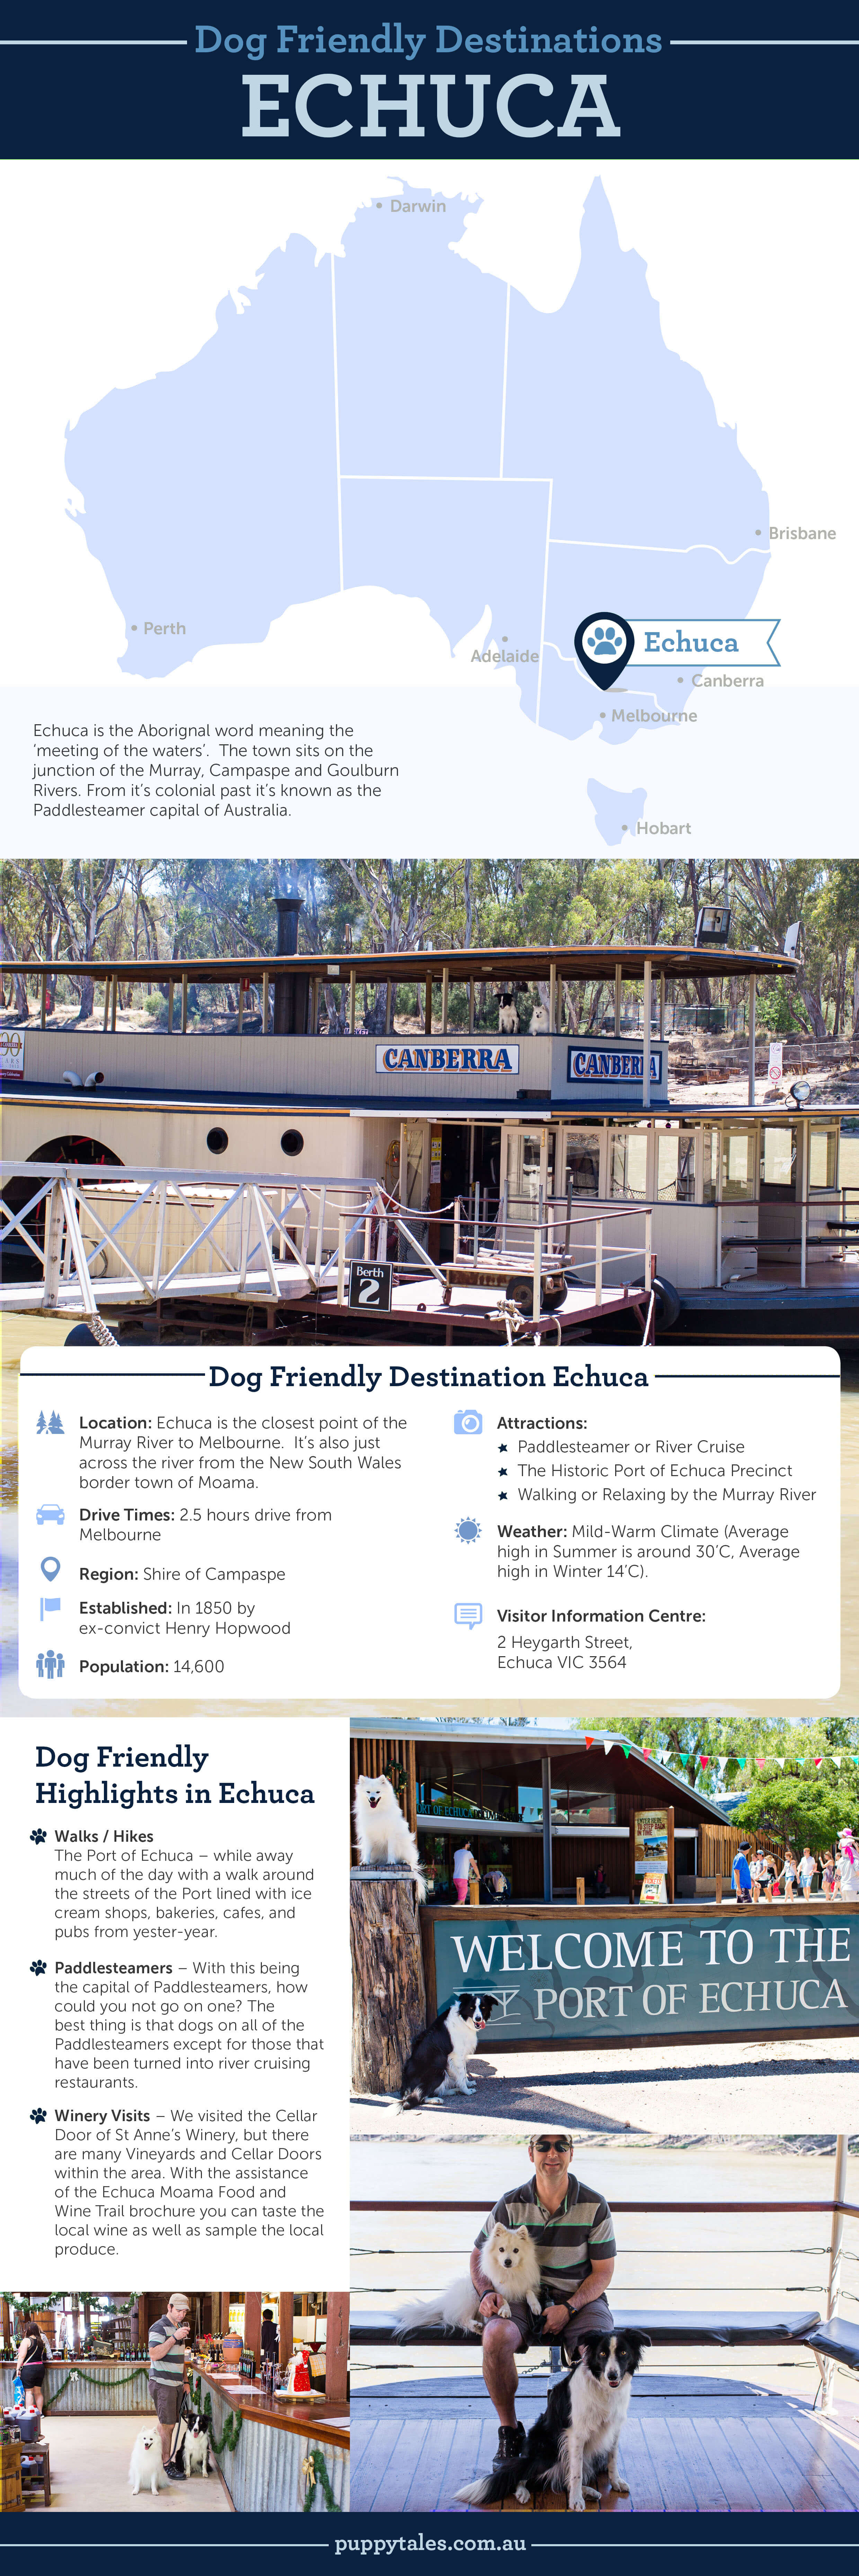 Dog Friendly Destinations ~ Echuca | Puppy Tales